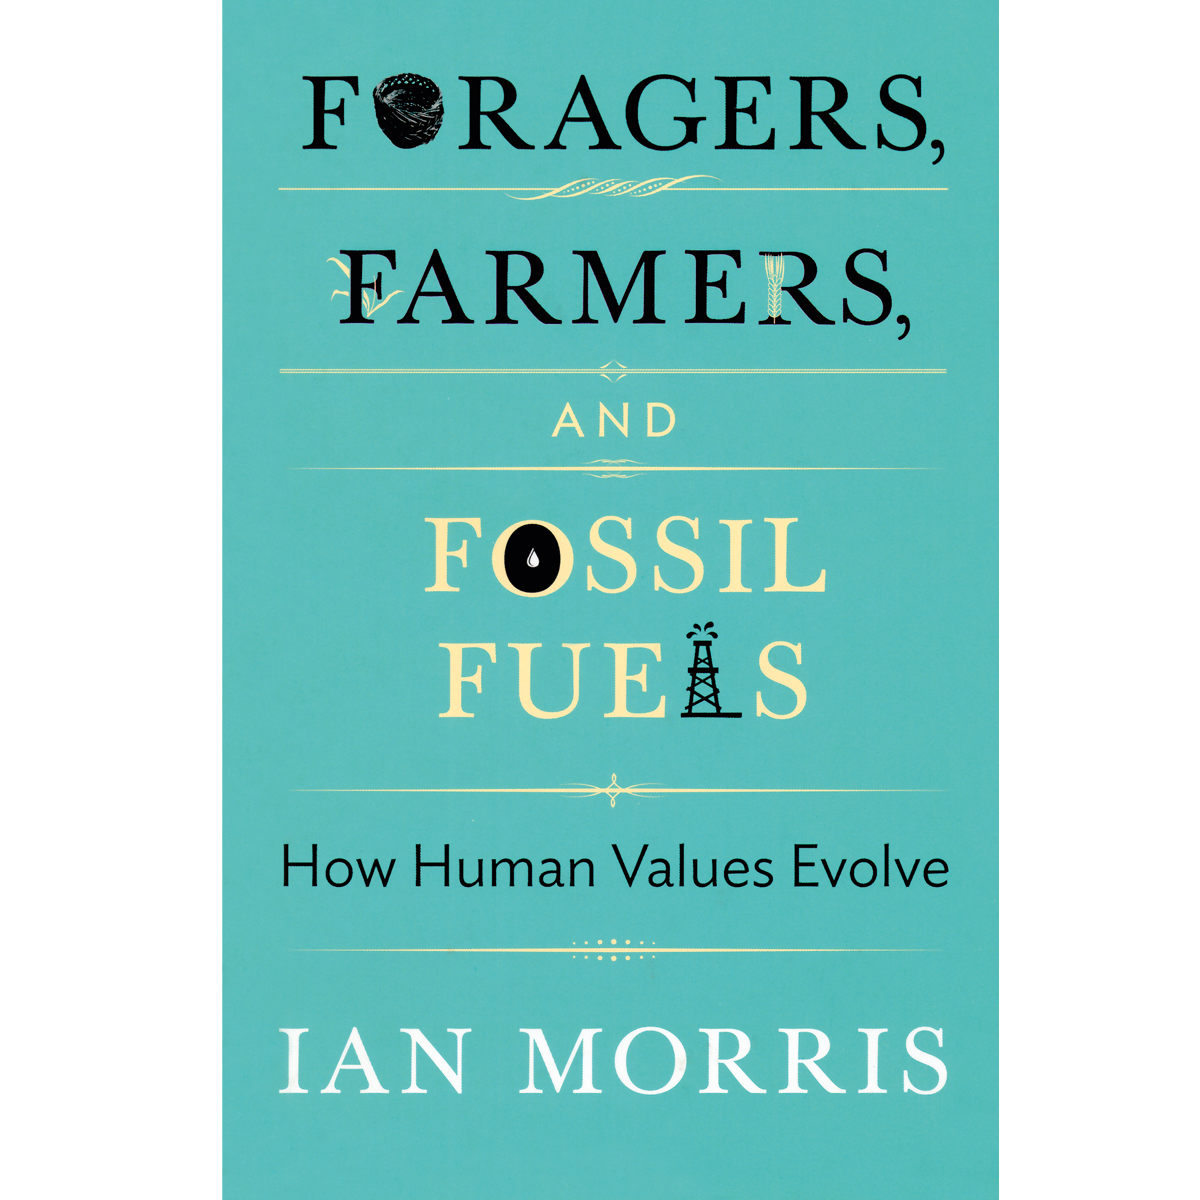 Foragers, Farmers and Fossil Fuels